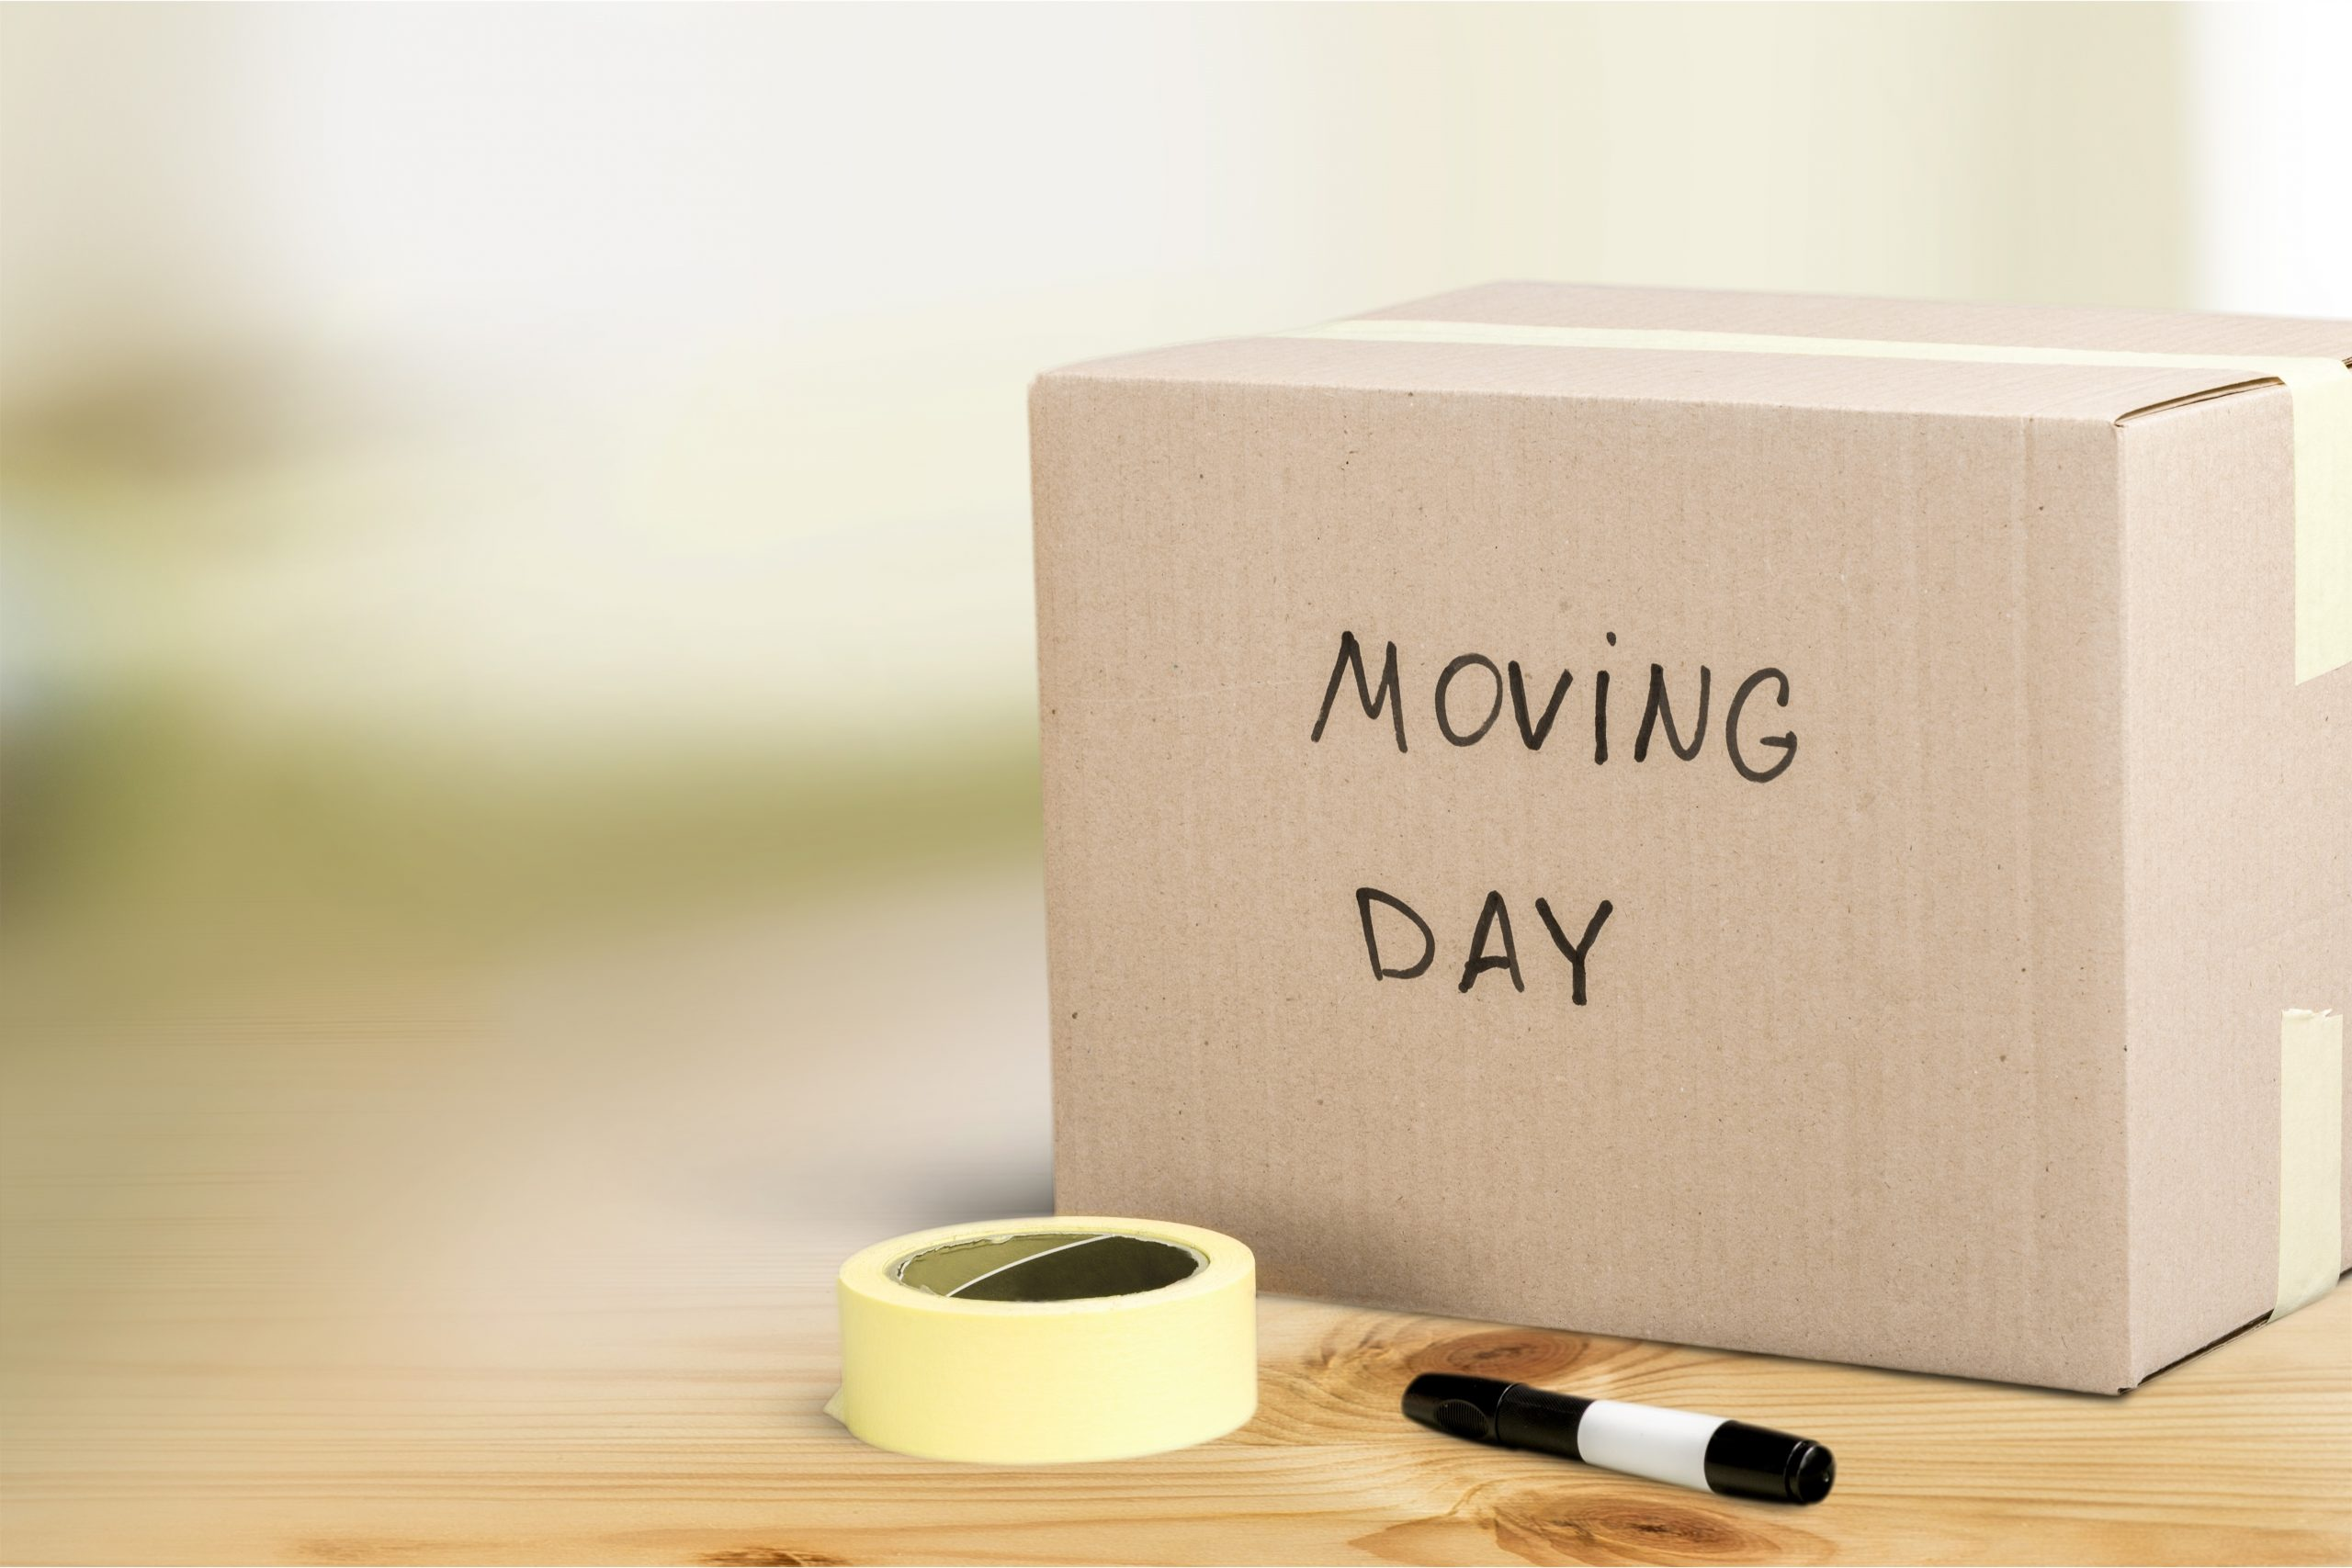 What Should I Know About Tipping The Movers?